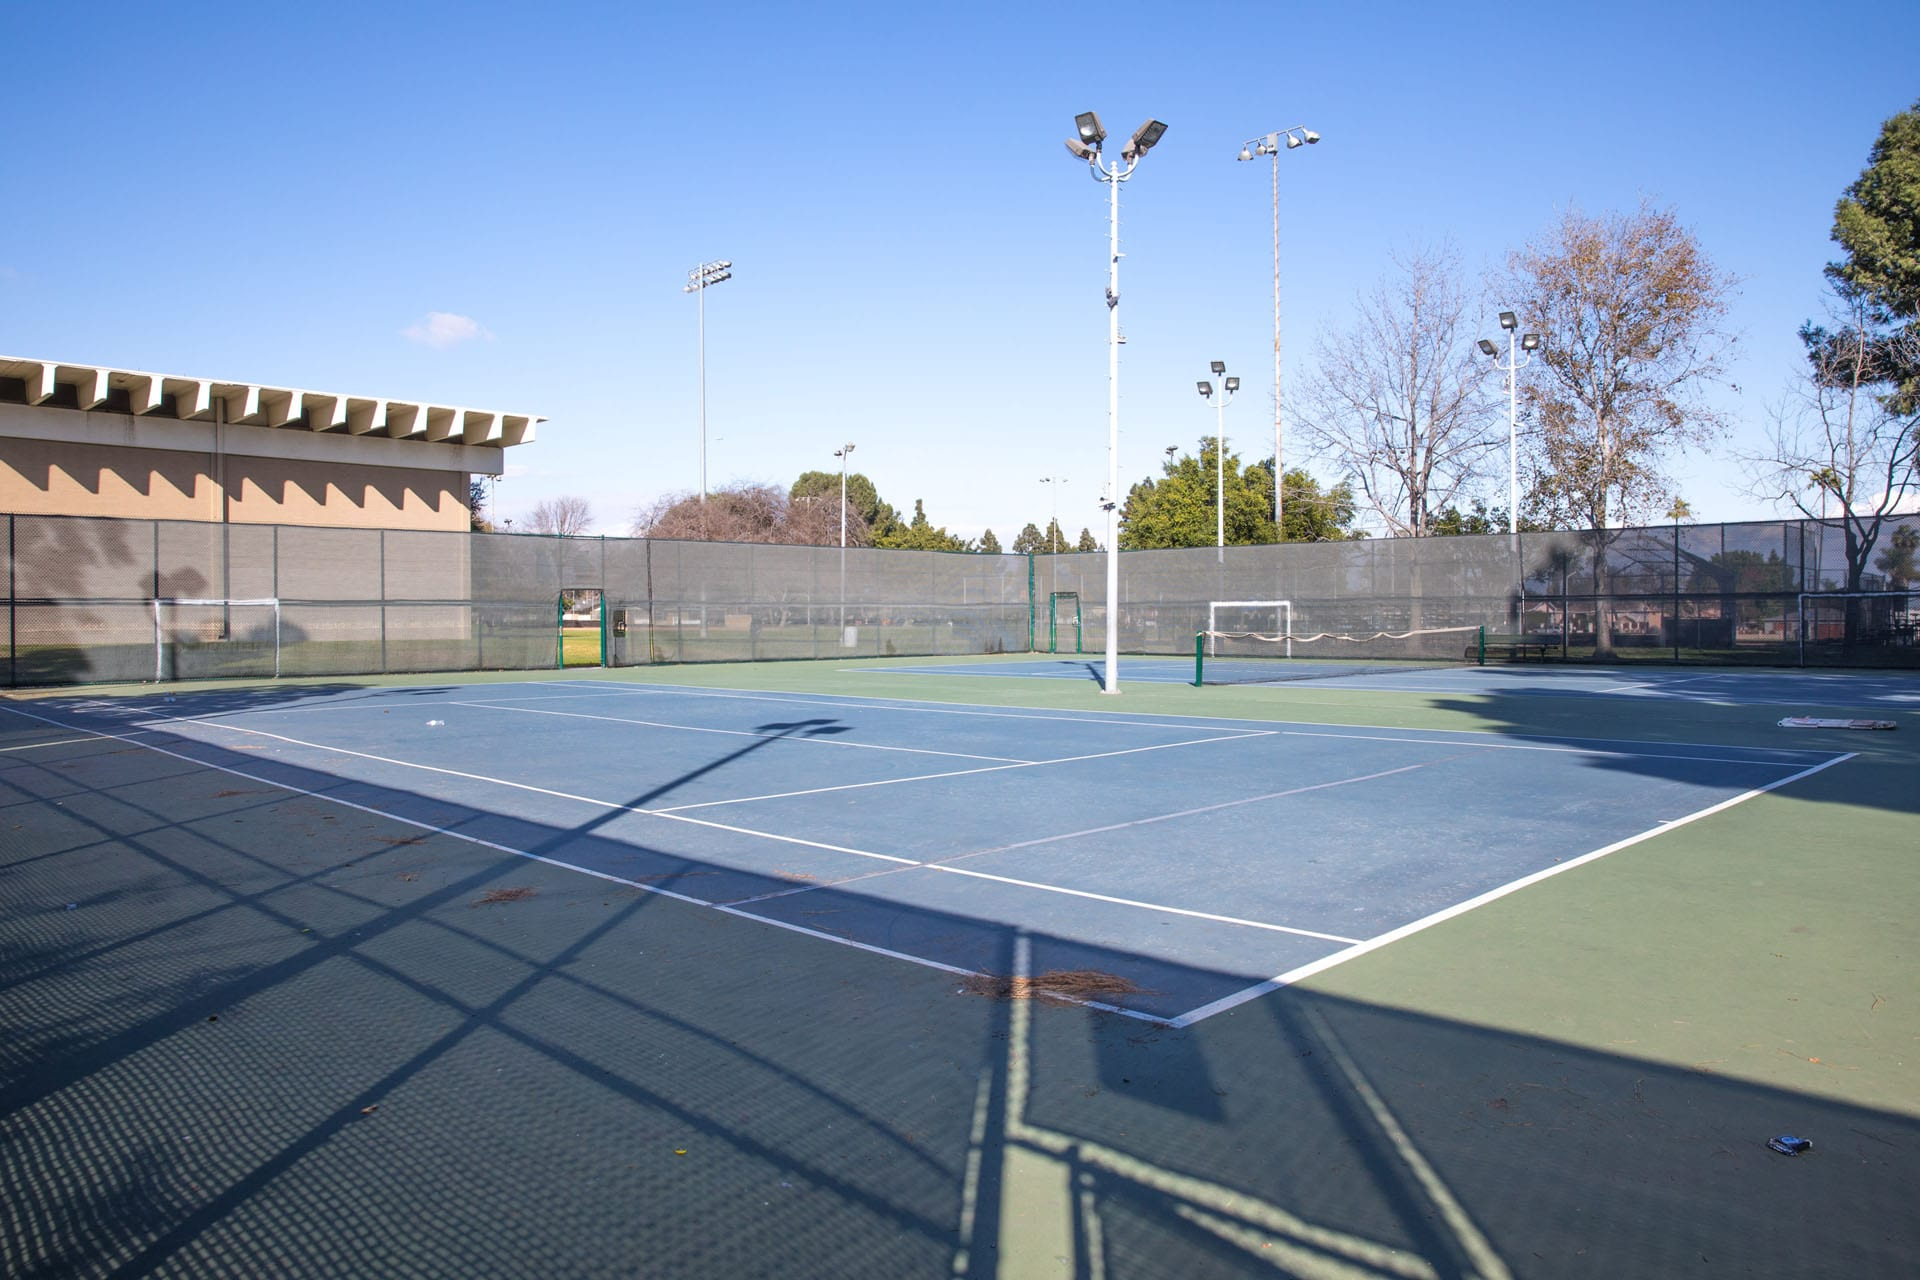 Athens Park tennis courts